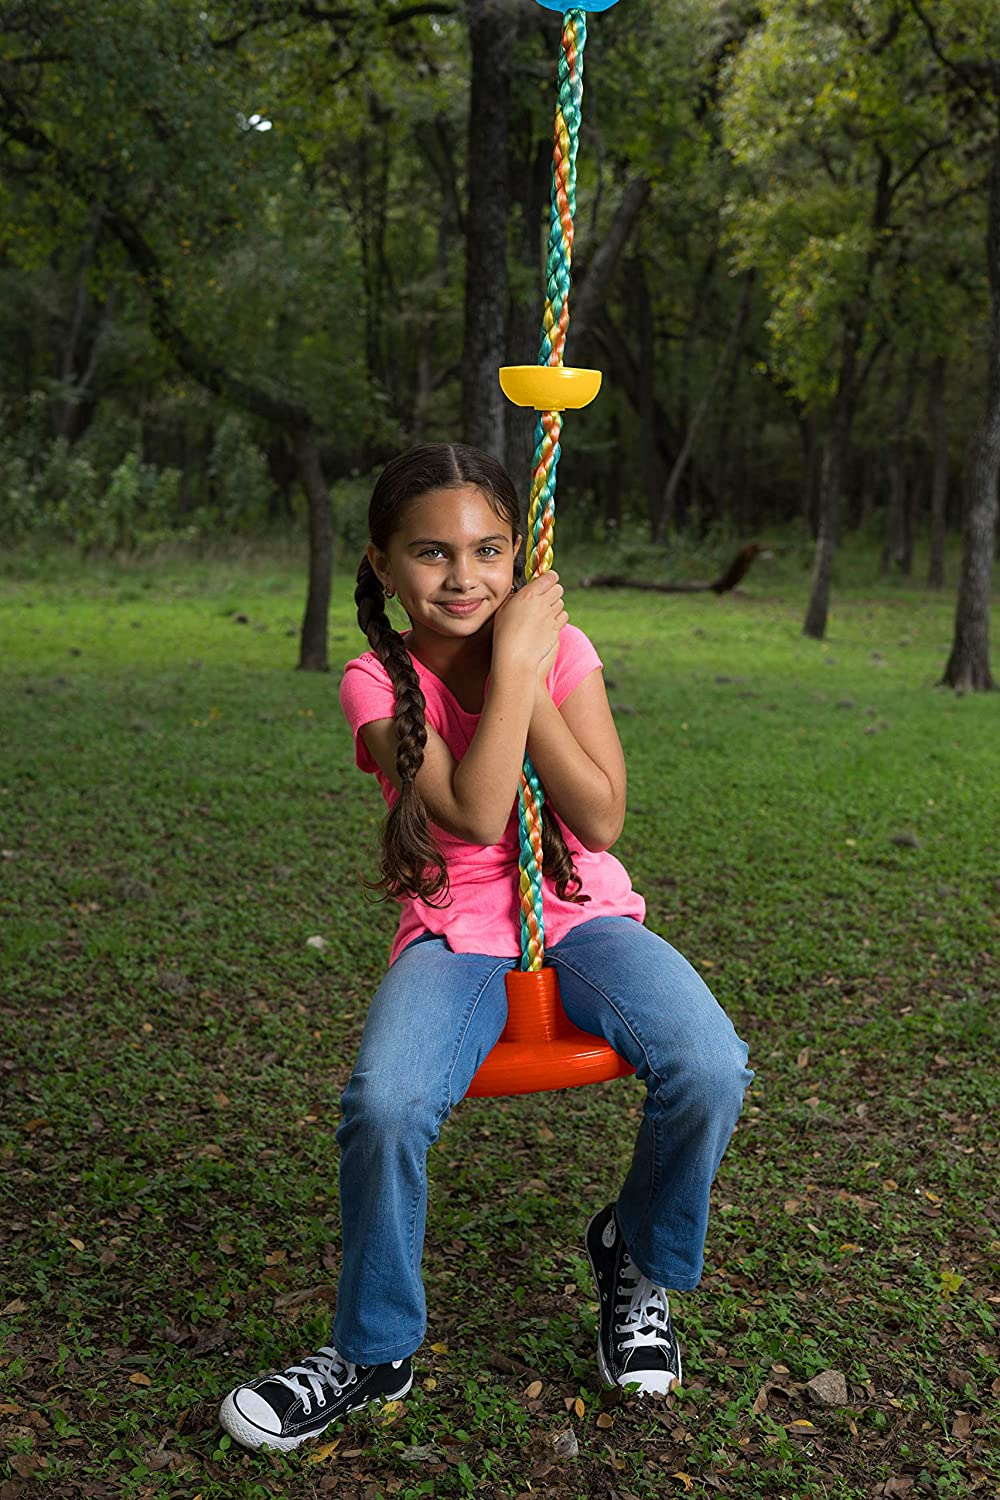 Safe Kidz Tree Swing Climbing Rope with Platforms Green Disc Great for Trees or Playsets